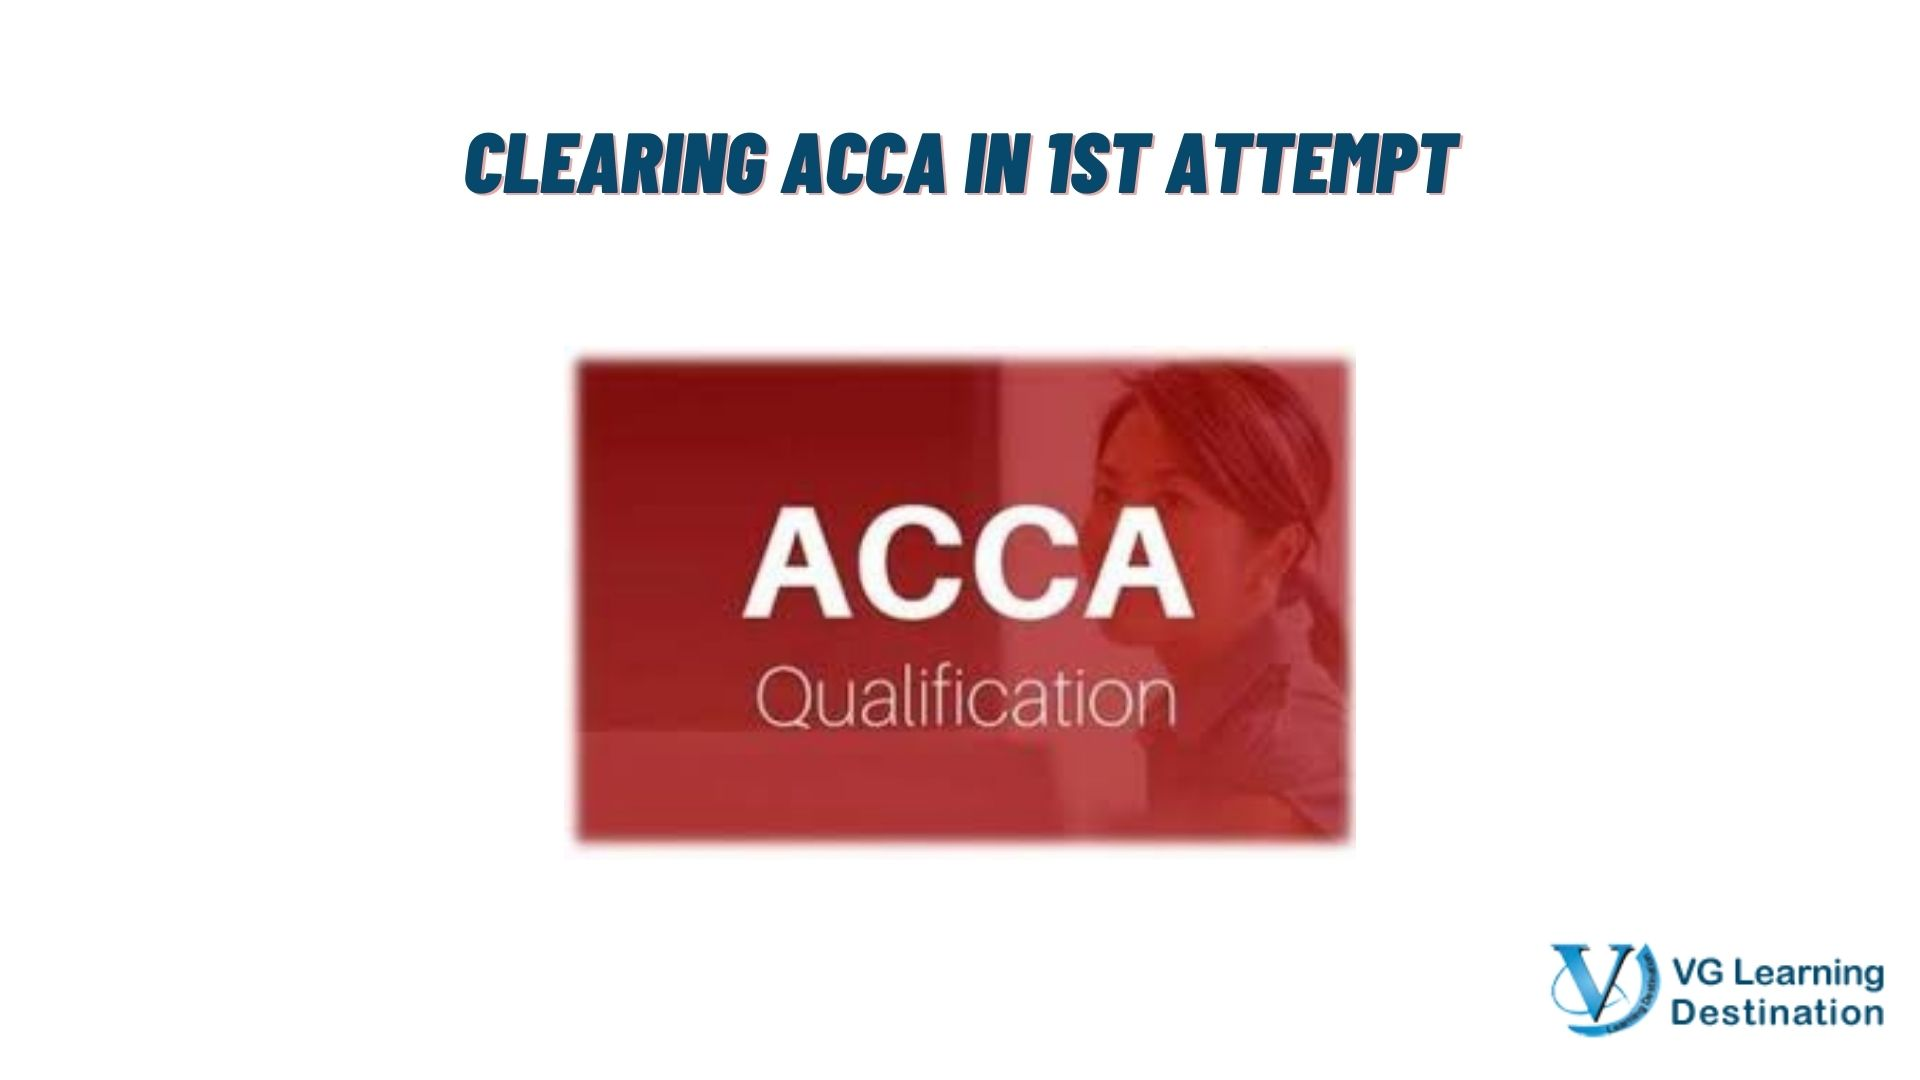 ACCA MASTERCLASS TO CLEAR EXAMS IN FIRST ATTEMPT